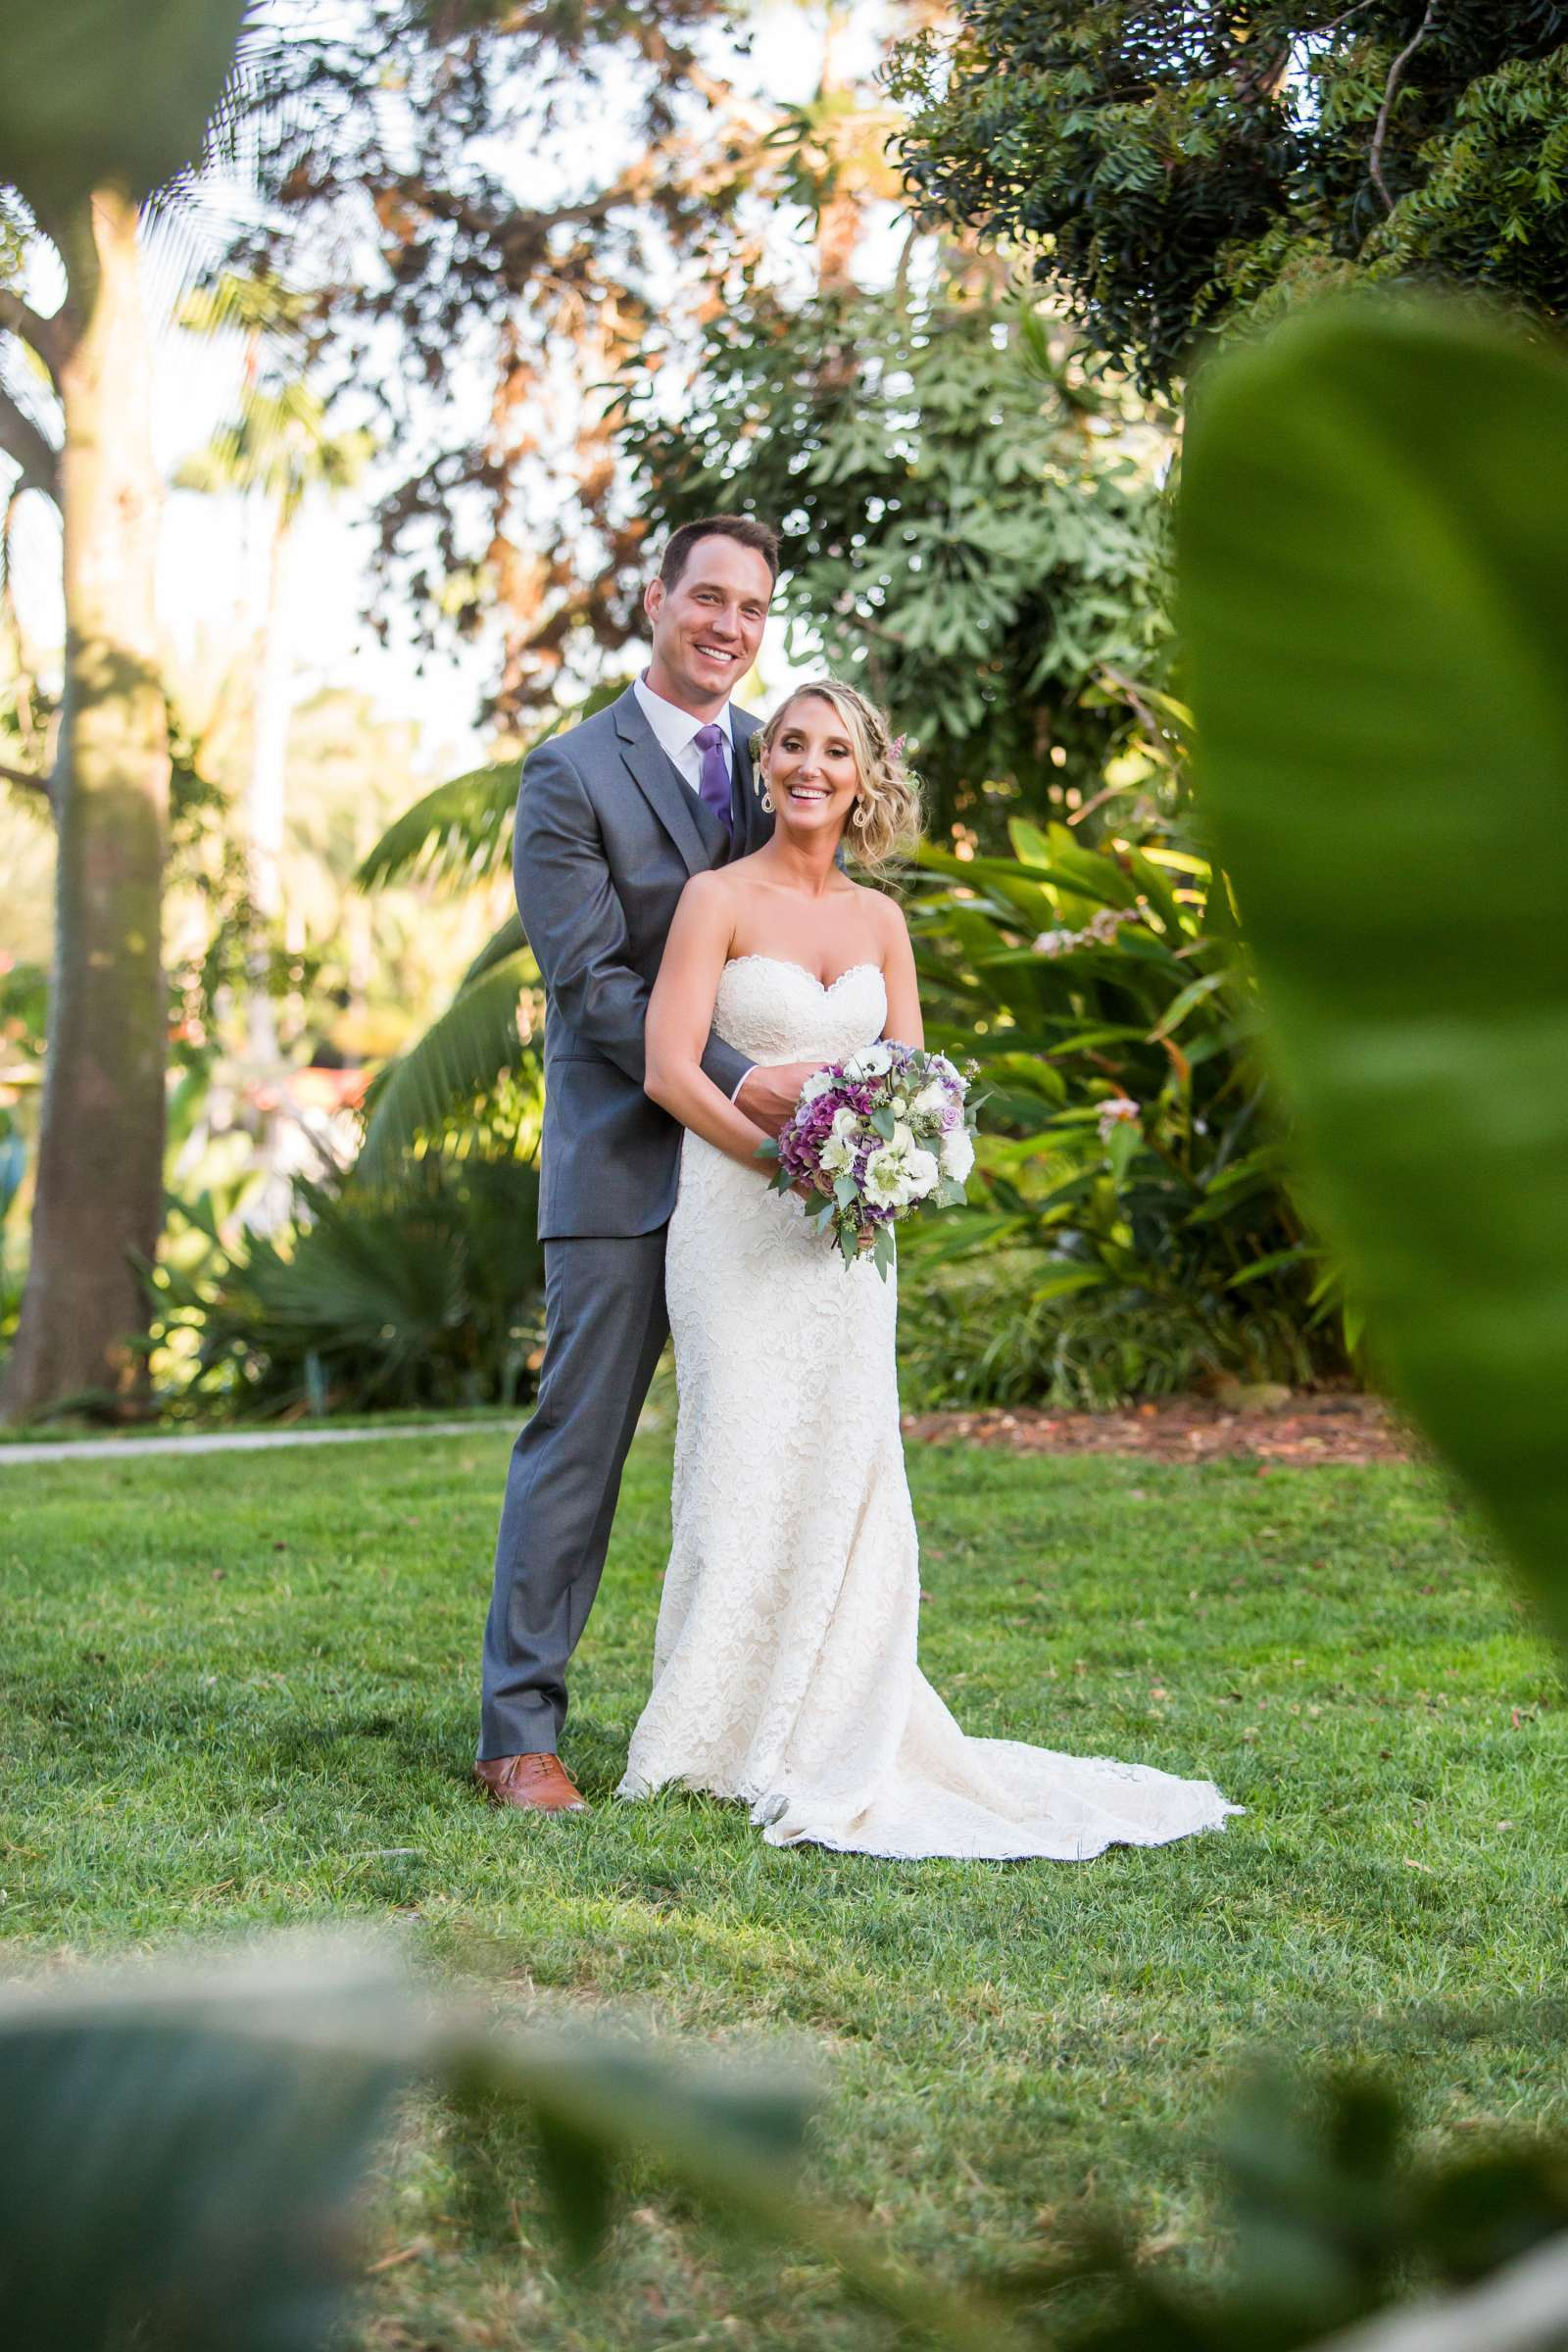 Paradise Point Wedding, Kimberly and Michael Wedding Photo #56 by True Photography